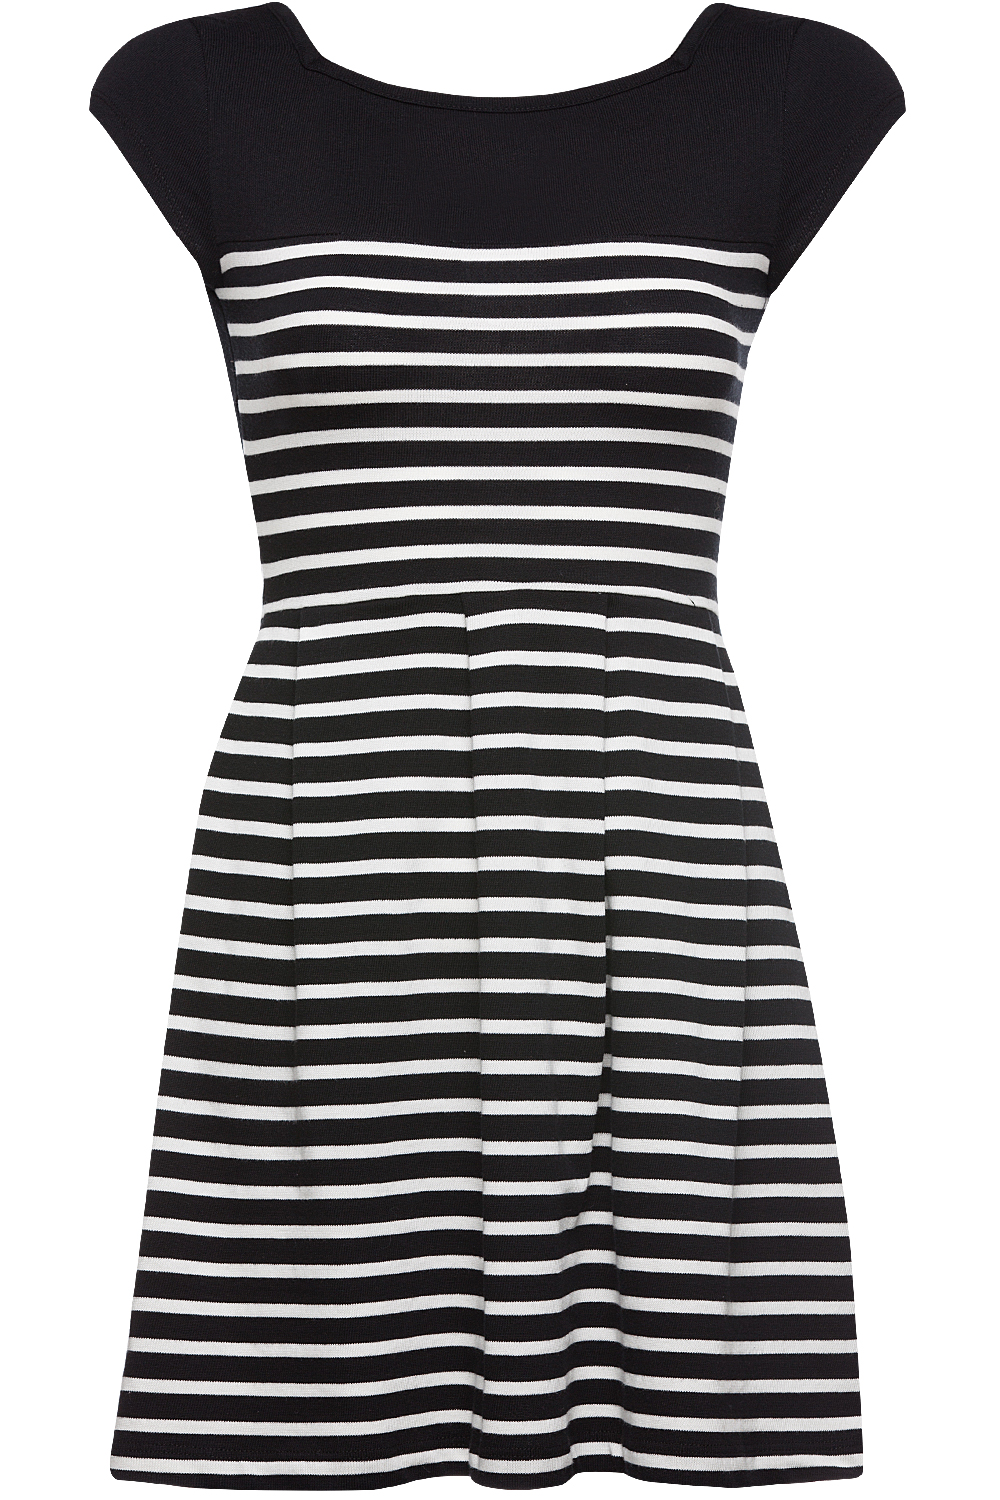 French Connection County Cotton Striped Dress Siyah Beyaz